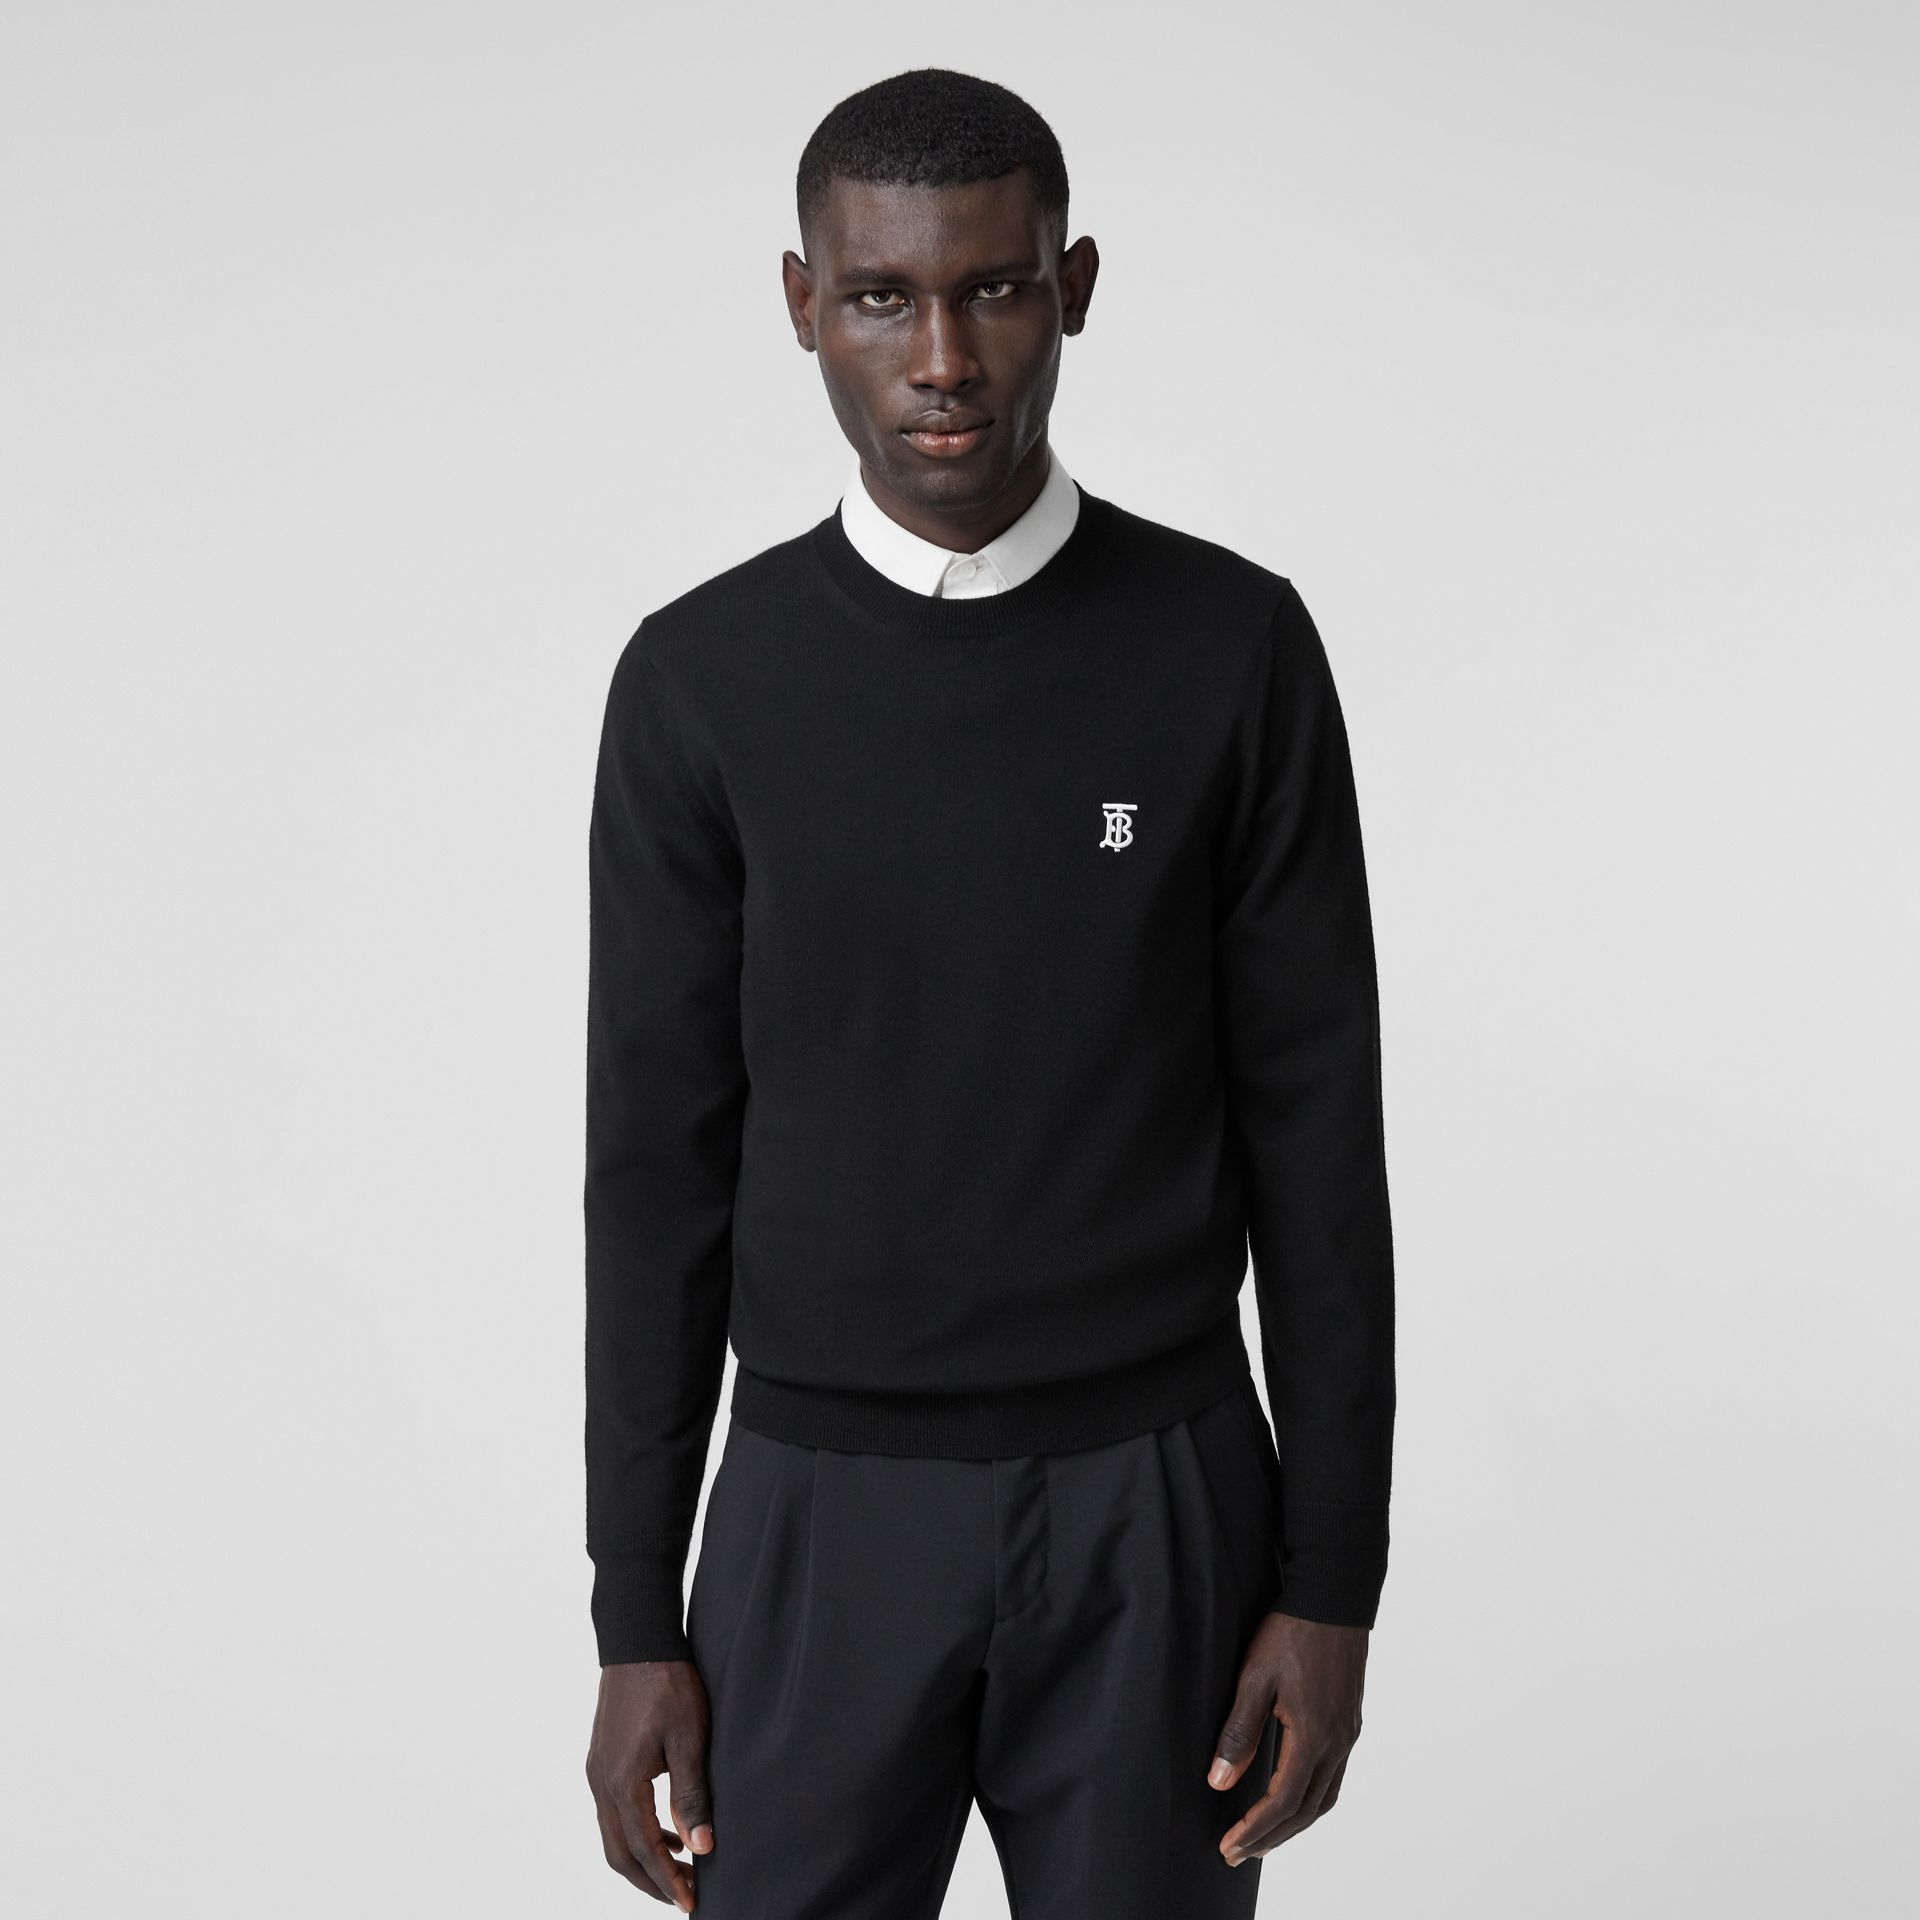 Monogram Motif Merino Wool Sweater in Black - Men | Burberry Australia - gallery image 4